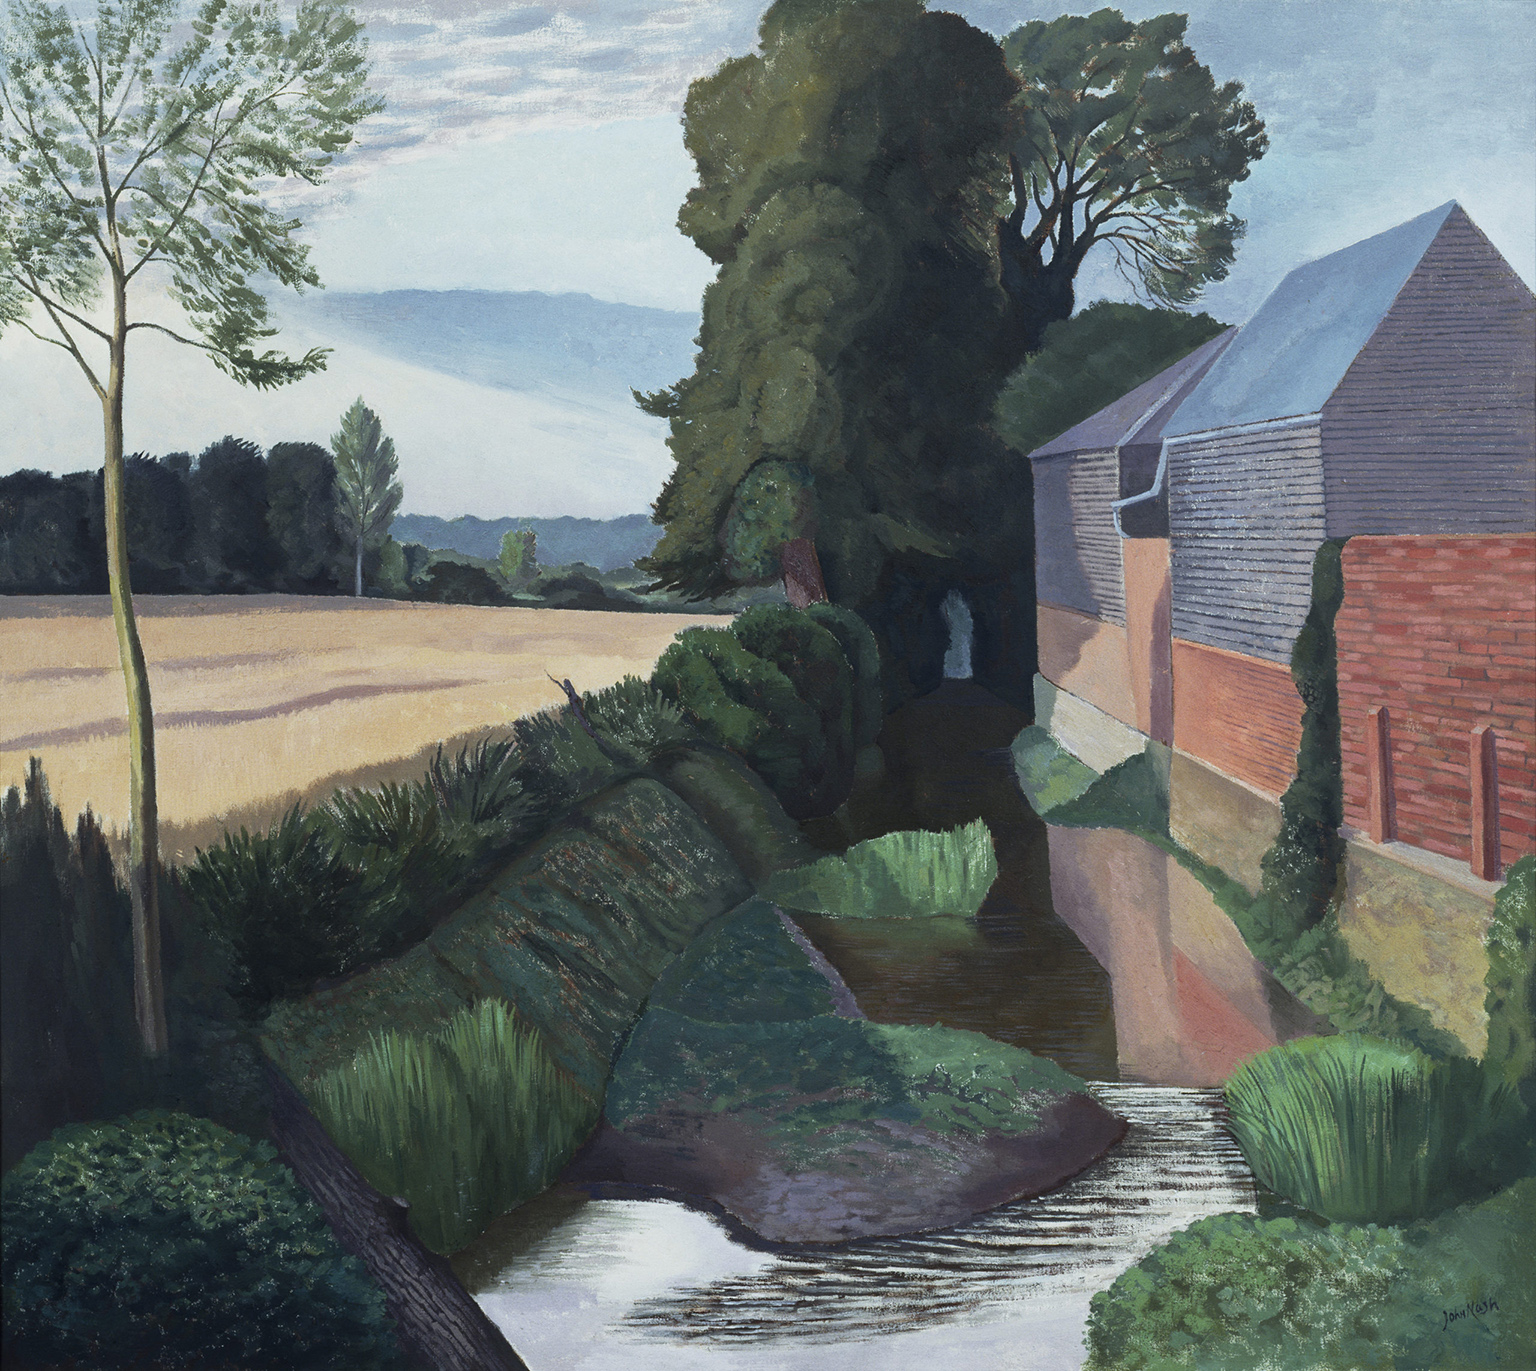 John Nash Mill Building Boxted 1962 oil-on-canvas. Tate. Presented by the Trustees of the Chantrey Bequest 1963.